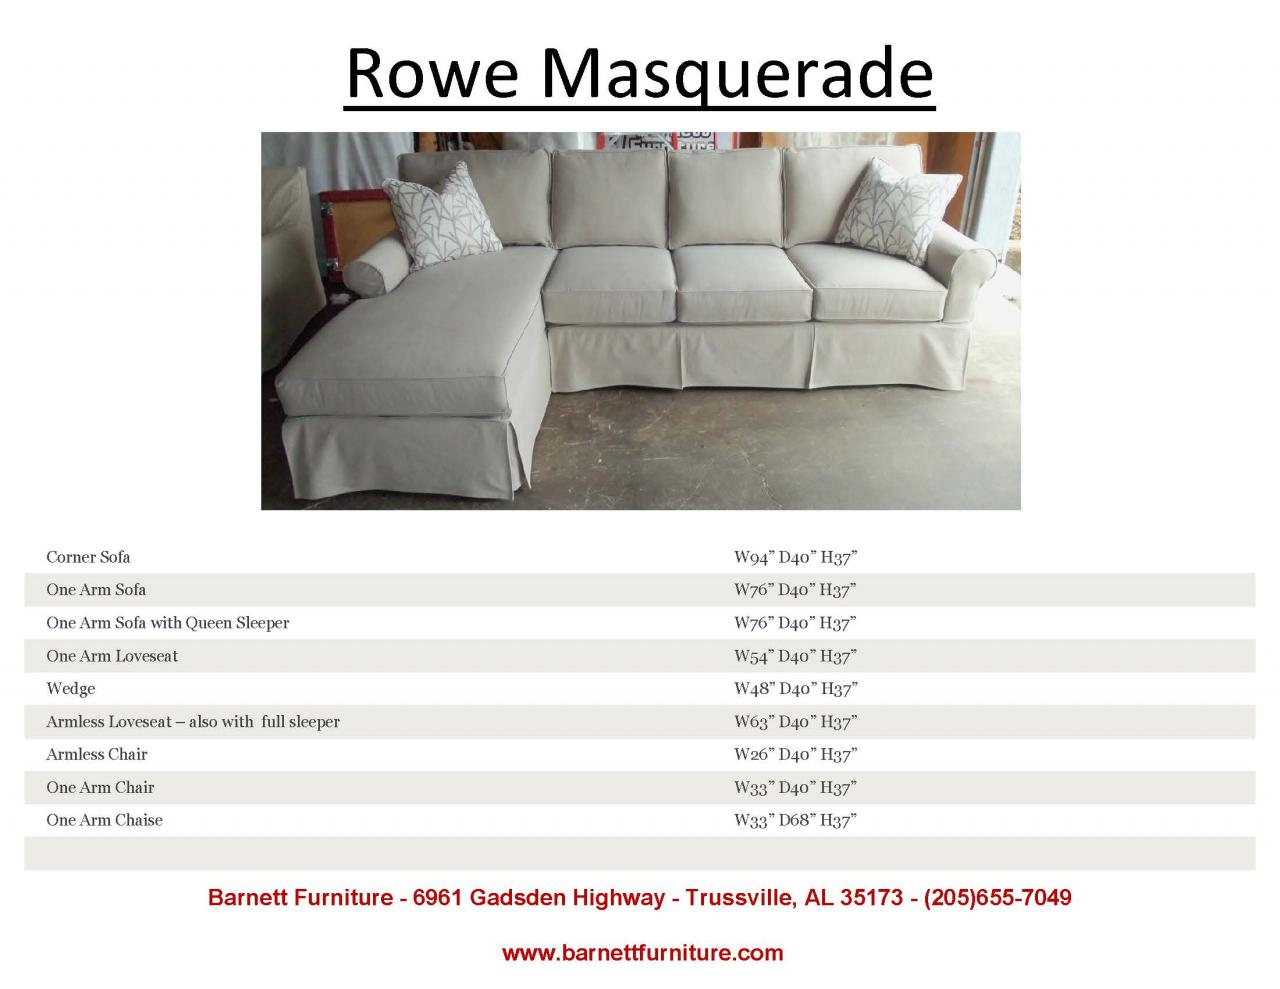 ... Rowe Masquerade Slipcover Sectional ...  sc 1 st  Barnett Furniture : slip cover for sectional couch - Sectionals, Sofas & Couches